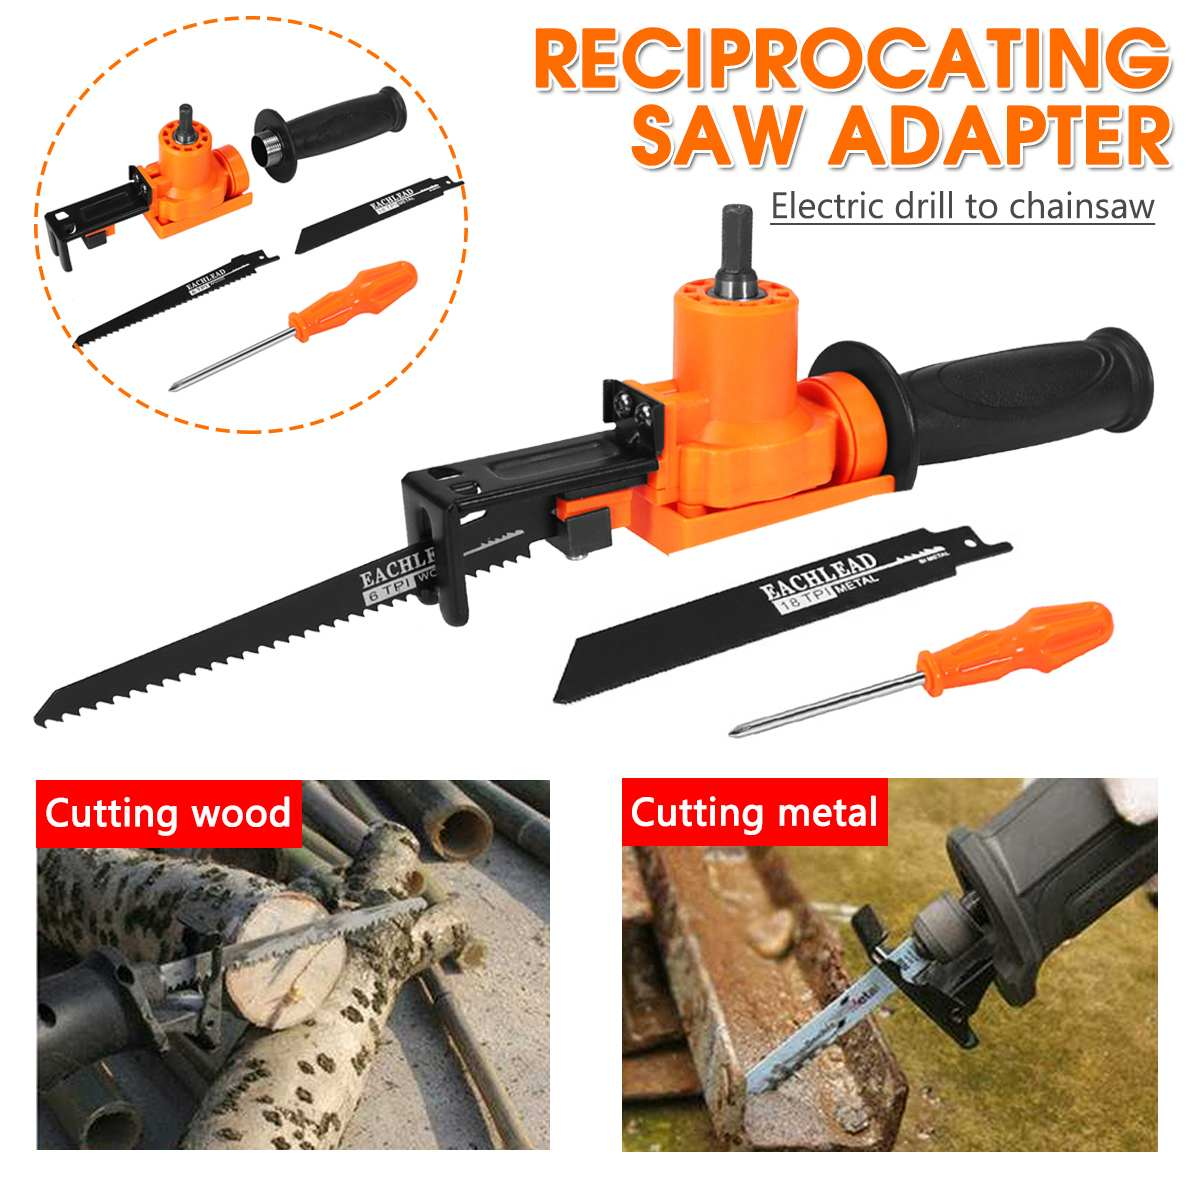 Reciprocating Saw Adapter Electric Drill Modified Electric Saw Hand Tool Wood Metal Cutter Long Service Life Durability NEW